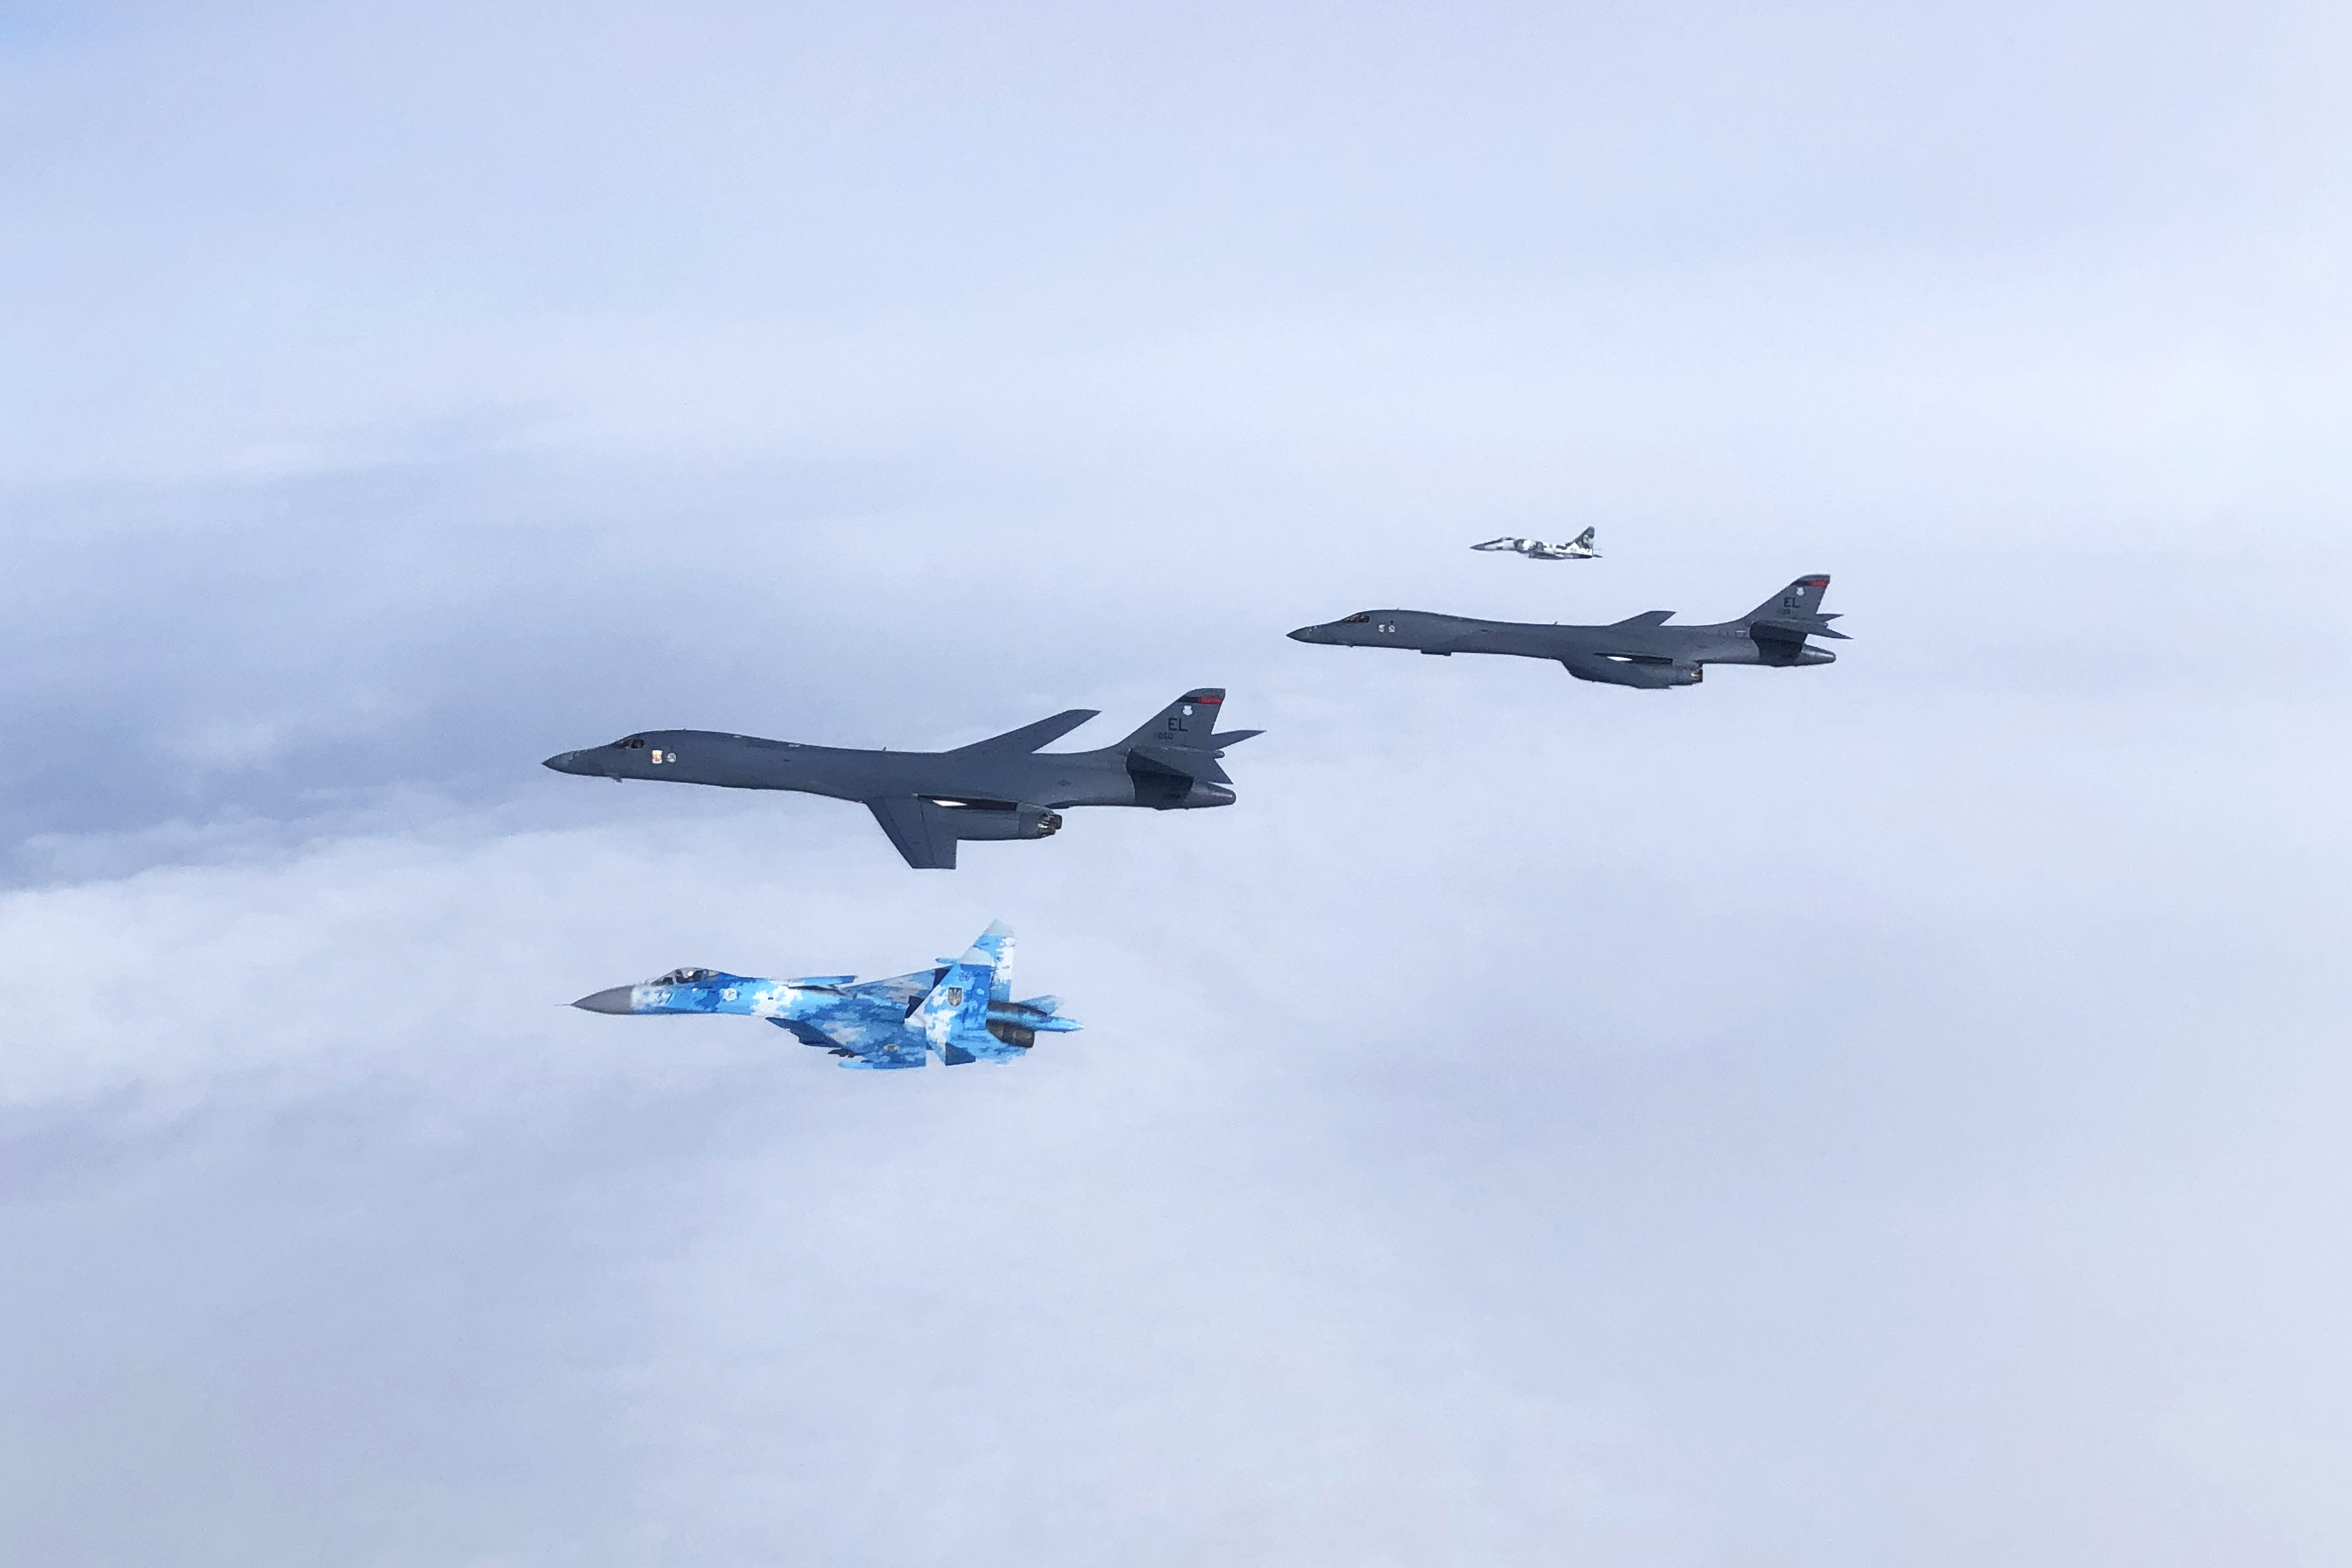 A Ukrainian Su-27 Flanker and MiG-29 Fulcrum escort two B-1B Lancers during a training mission for Bomber Task Force Europe on May 29, 2020, in the Black Sea region. (Courtesy of the Ukrainian Air Force)